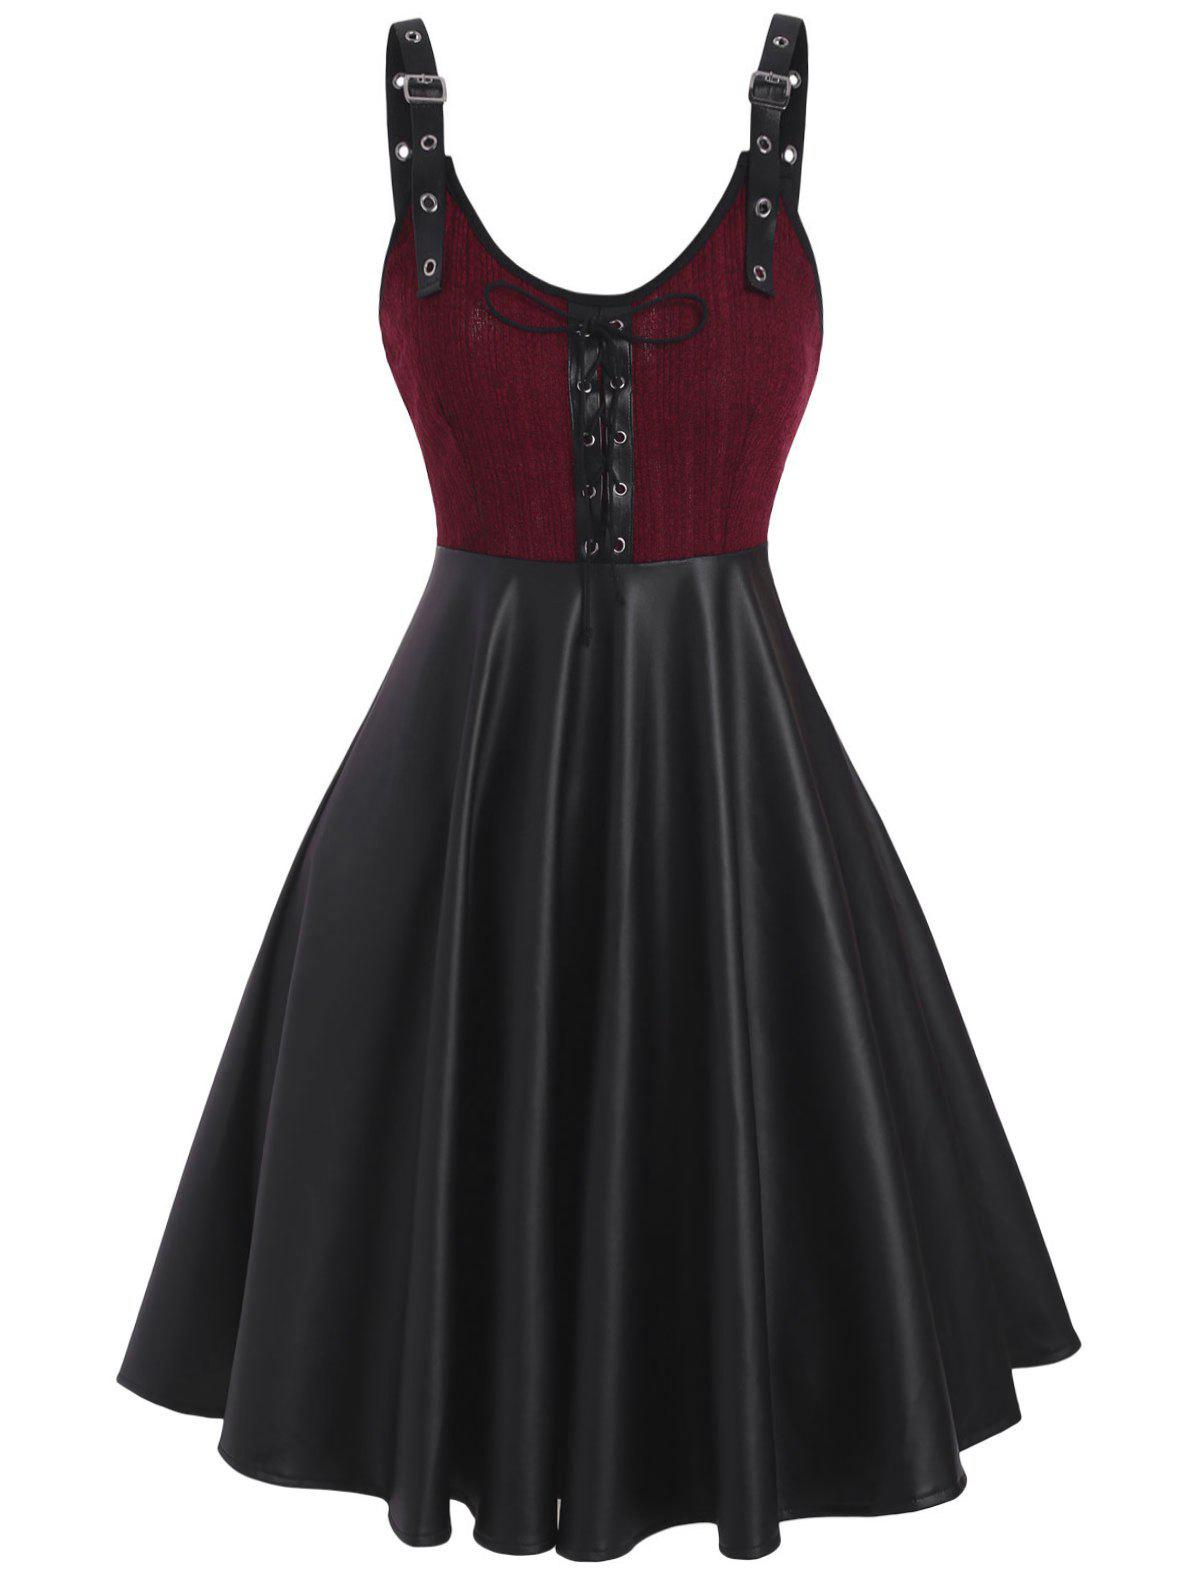 Buckled Lace-up Knit Panel Faux Leather Dress - DEEP RED XL